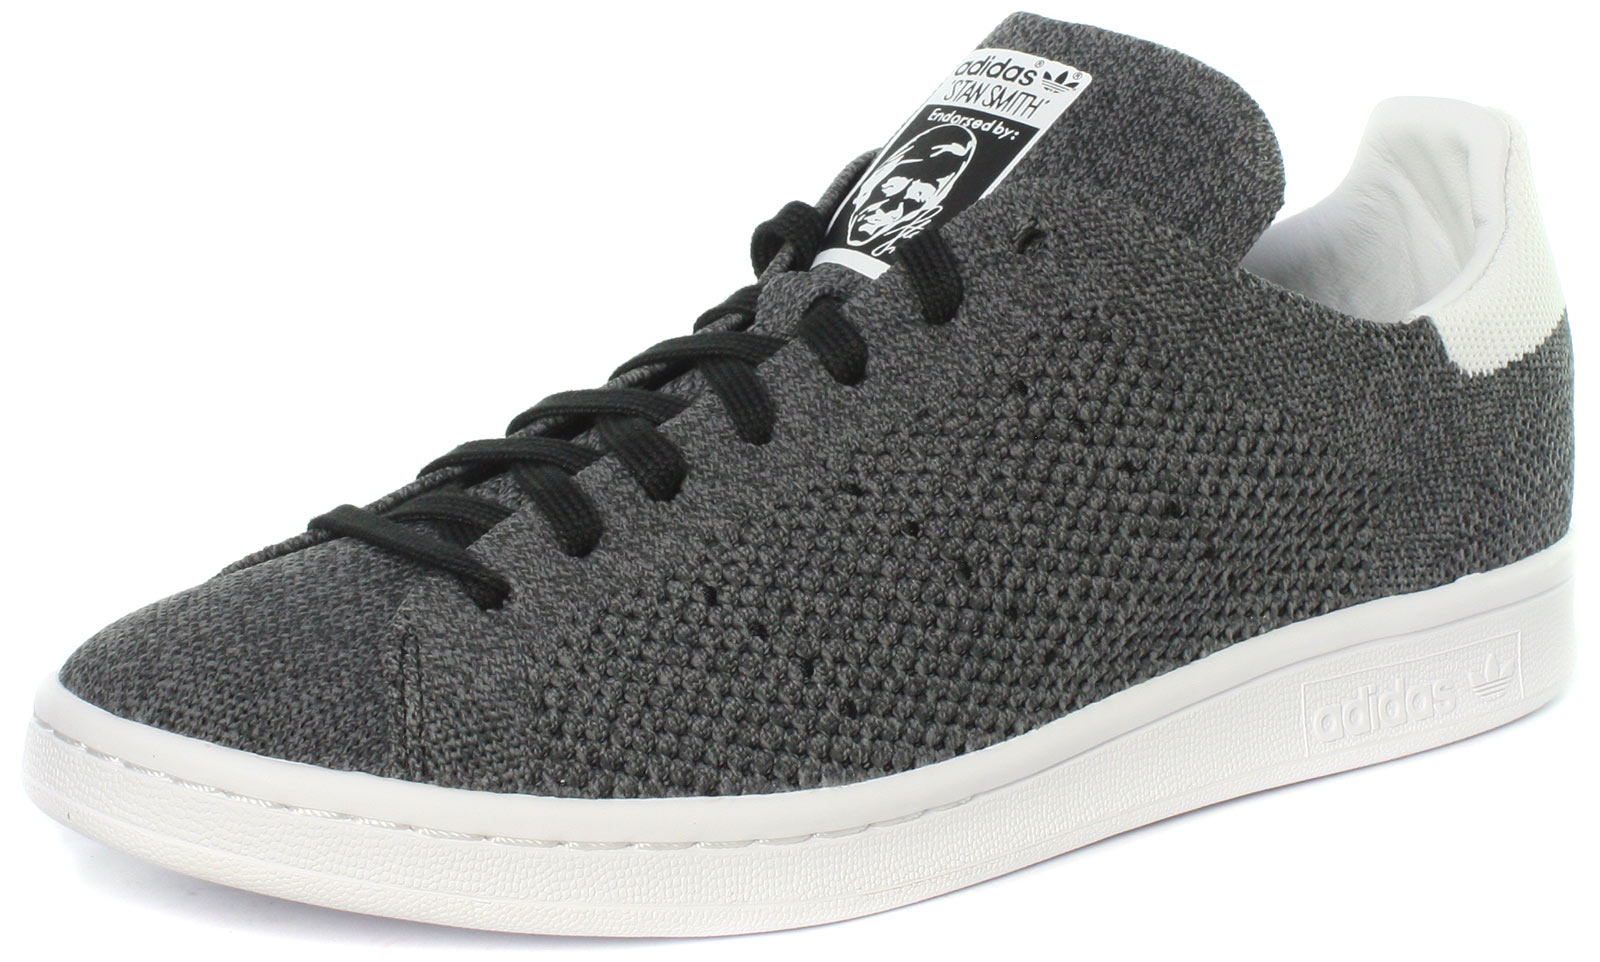 New adidas Originals Stan Smith Primeknit Mens Trainers ALL SIZES